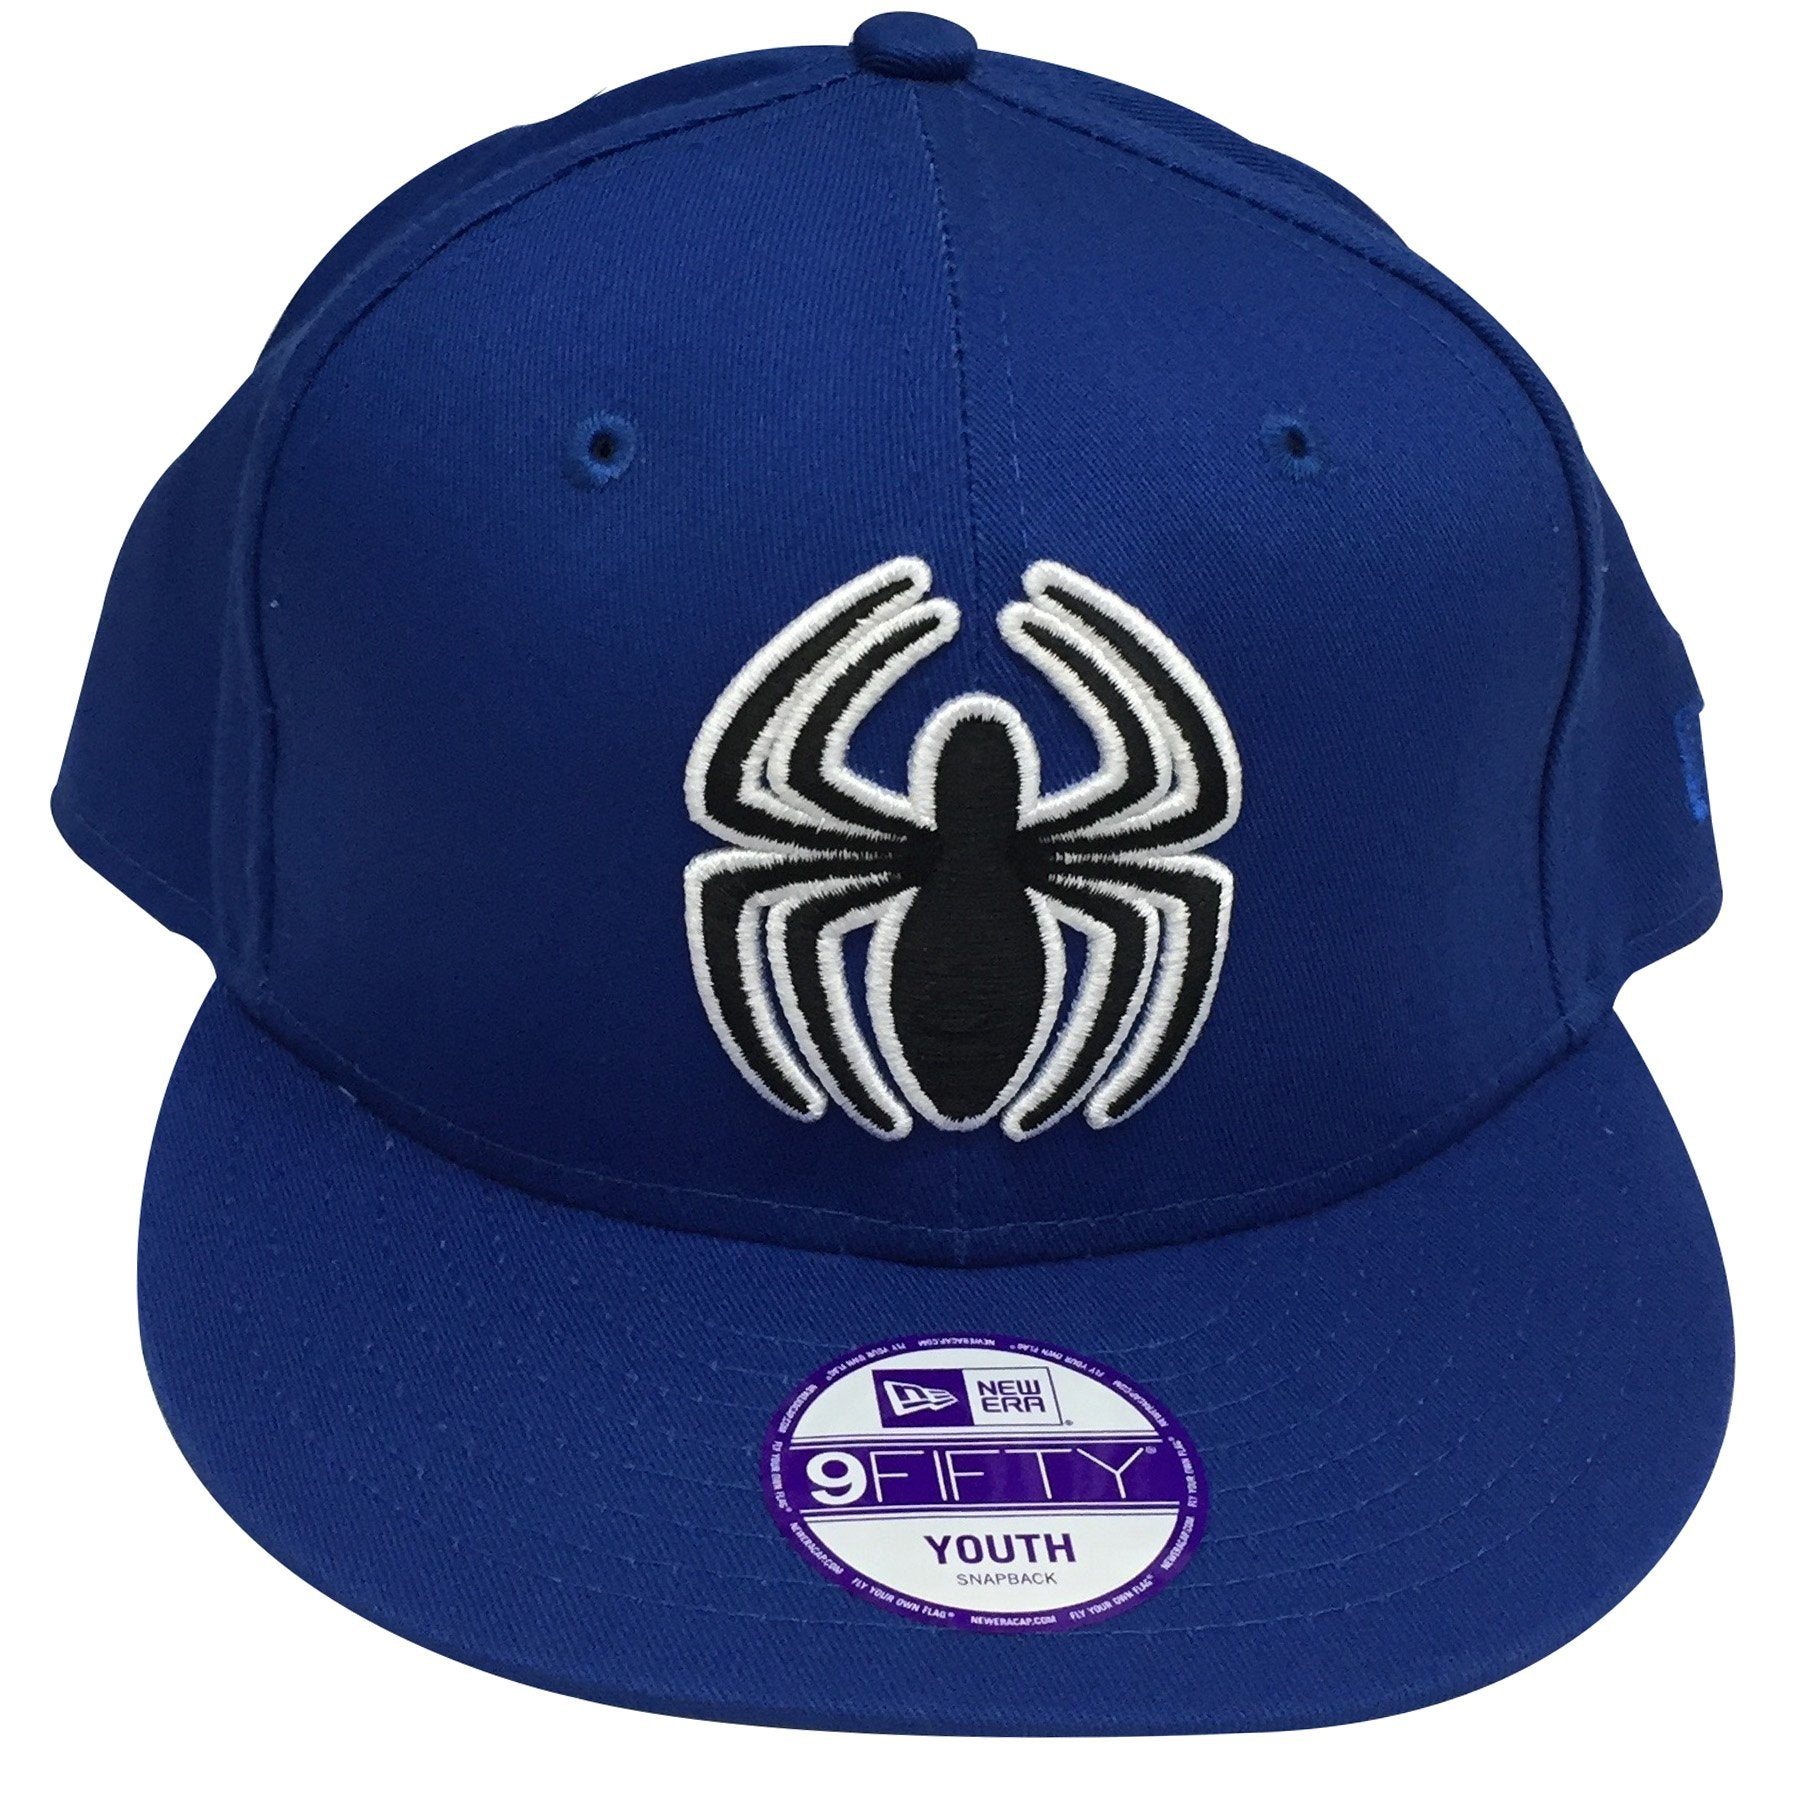 776ae6a0868615 on the front spider-man kid's sized solid blue snapback hat, the spider man